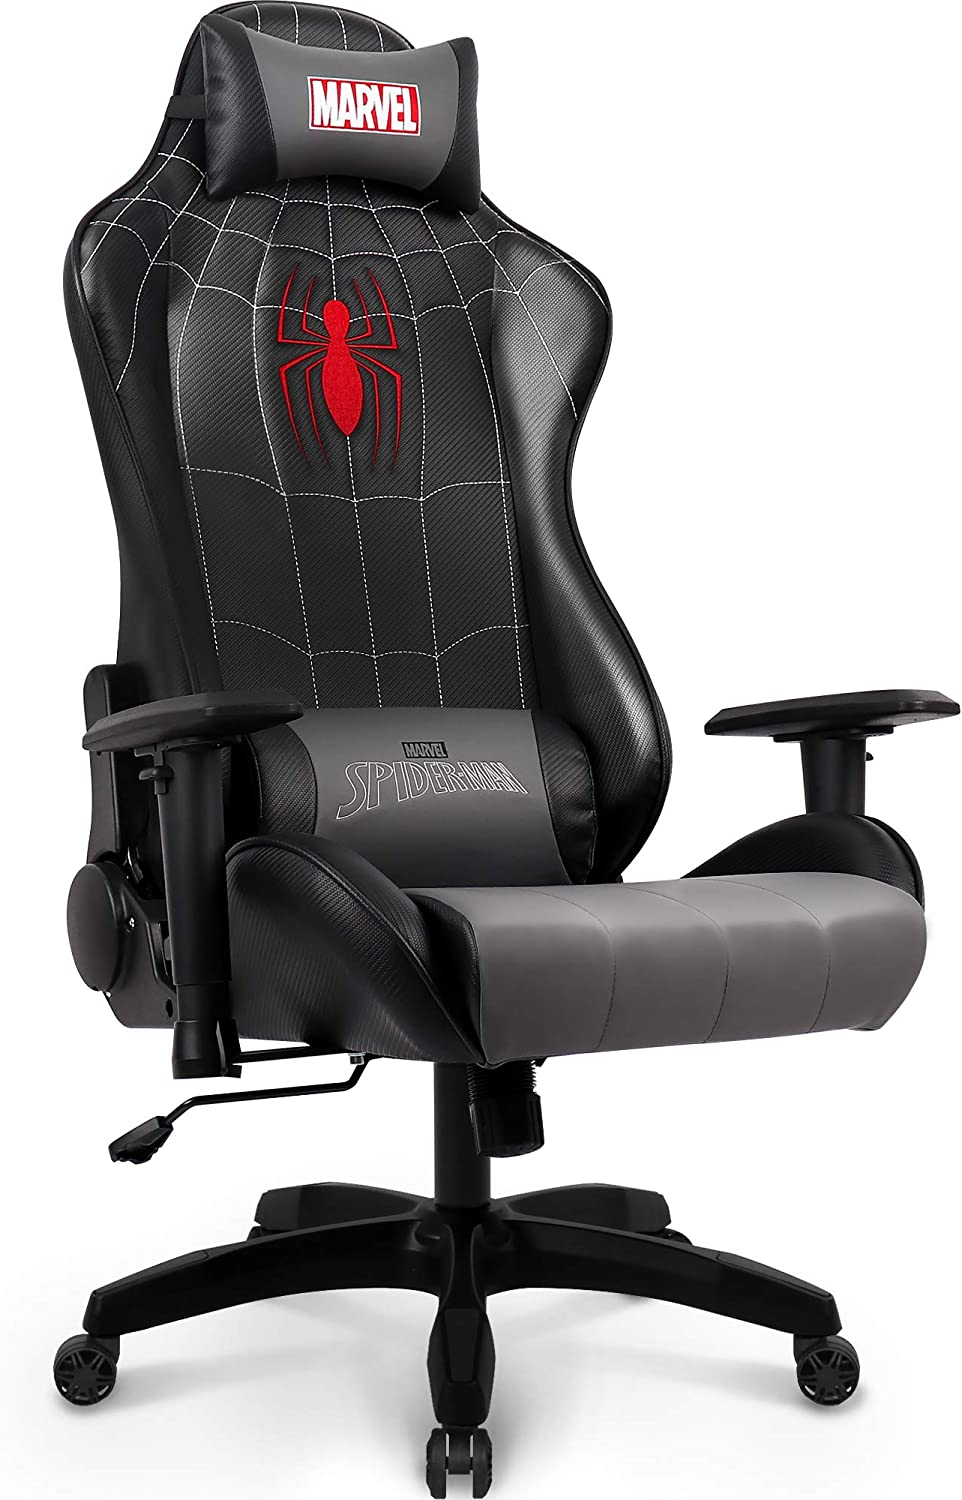 Marvel Avengers Gaming Chair Desk Office Computer Racing Chairs - Recliner Adults Gamer Ergonomic Game Reclining High Back Support Racer Leather Rocker (Spider-Man)